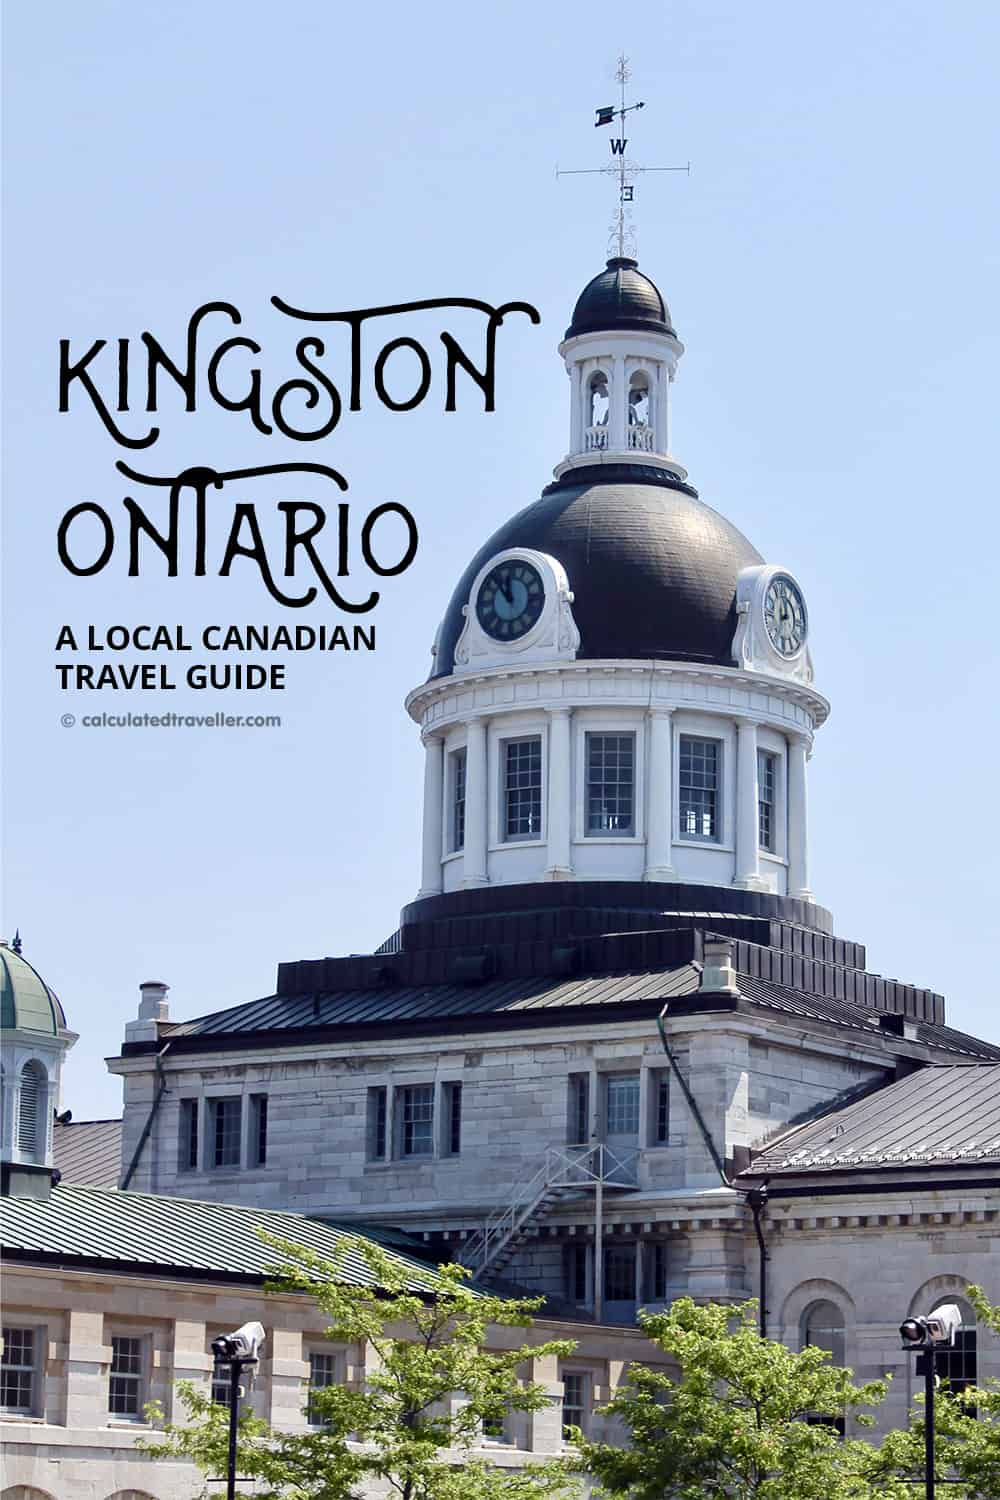 Welcome to the Limestone City of Kingston, Ontario | #travel #Kingston #Ontario #Canada